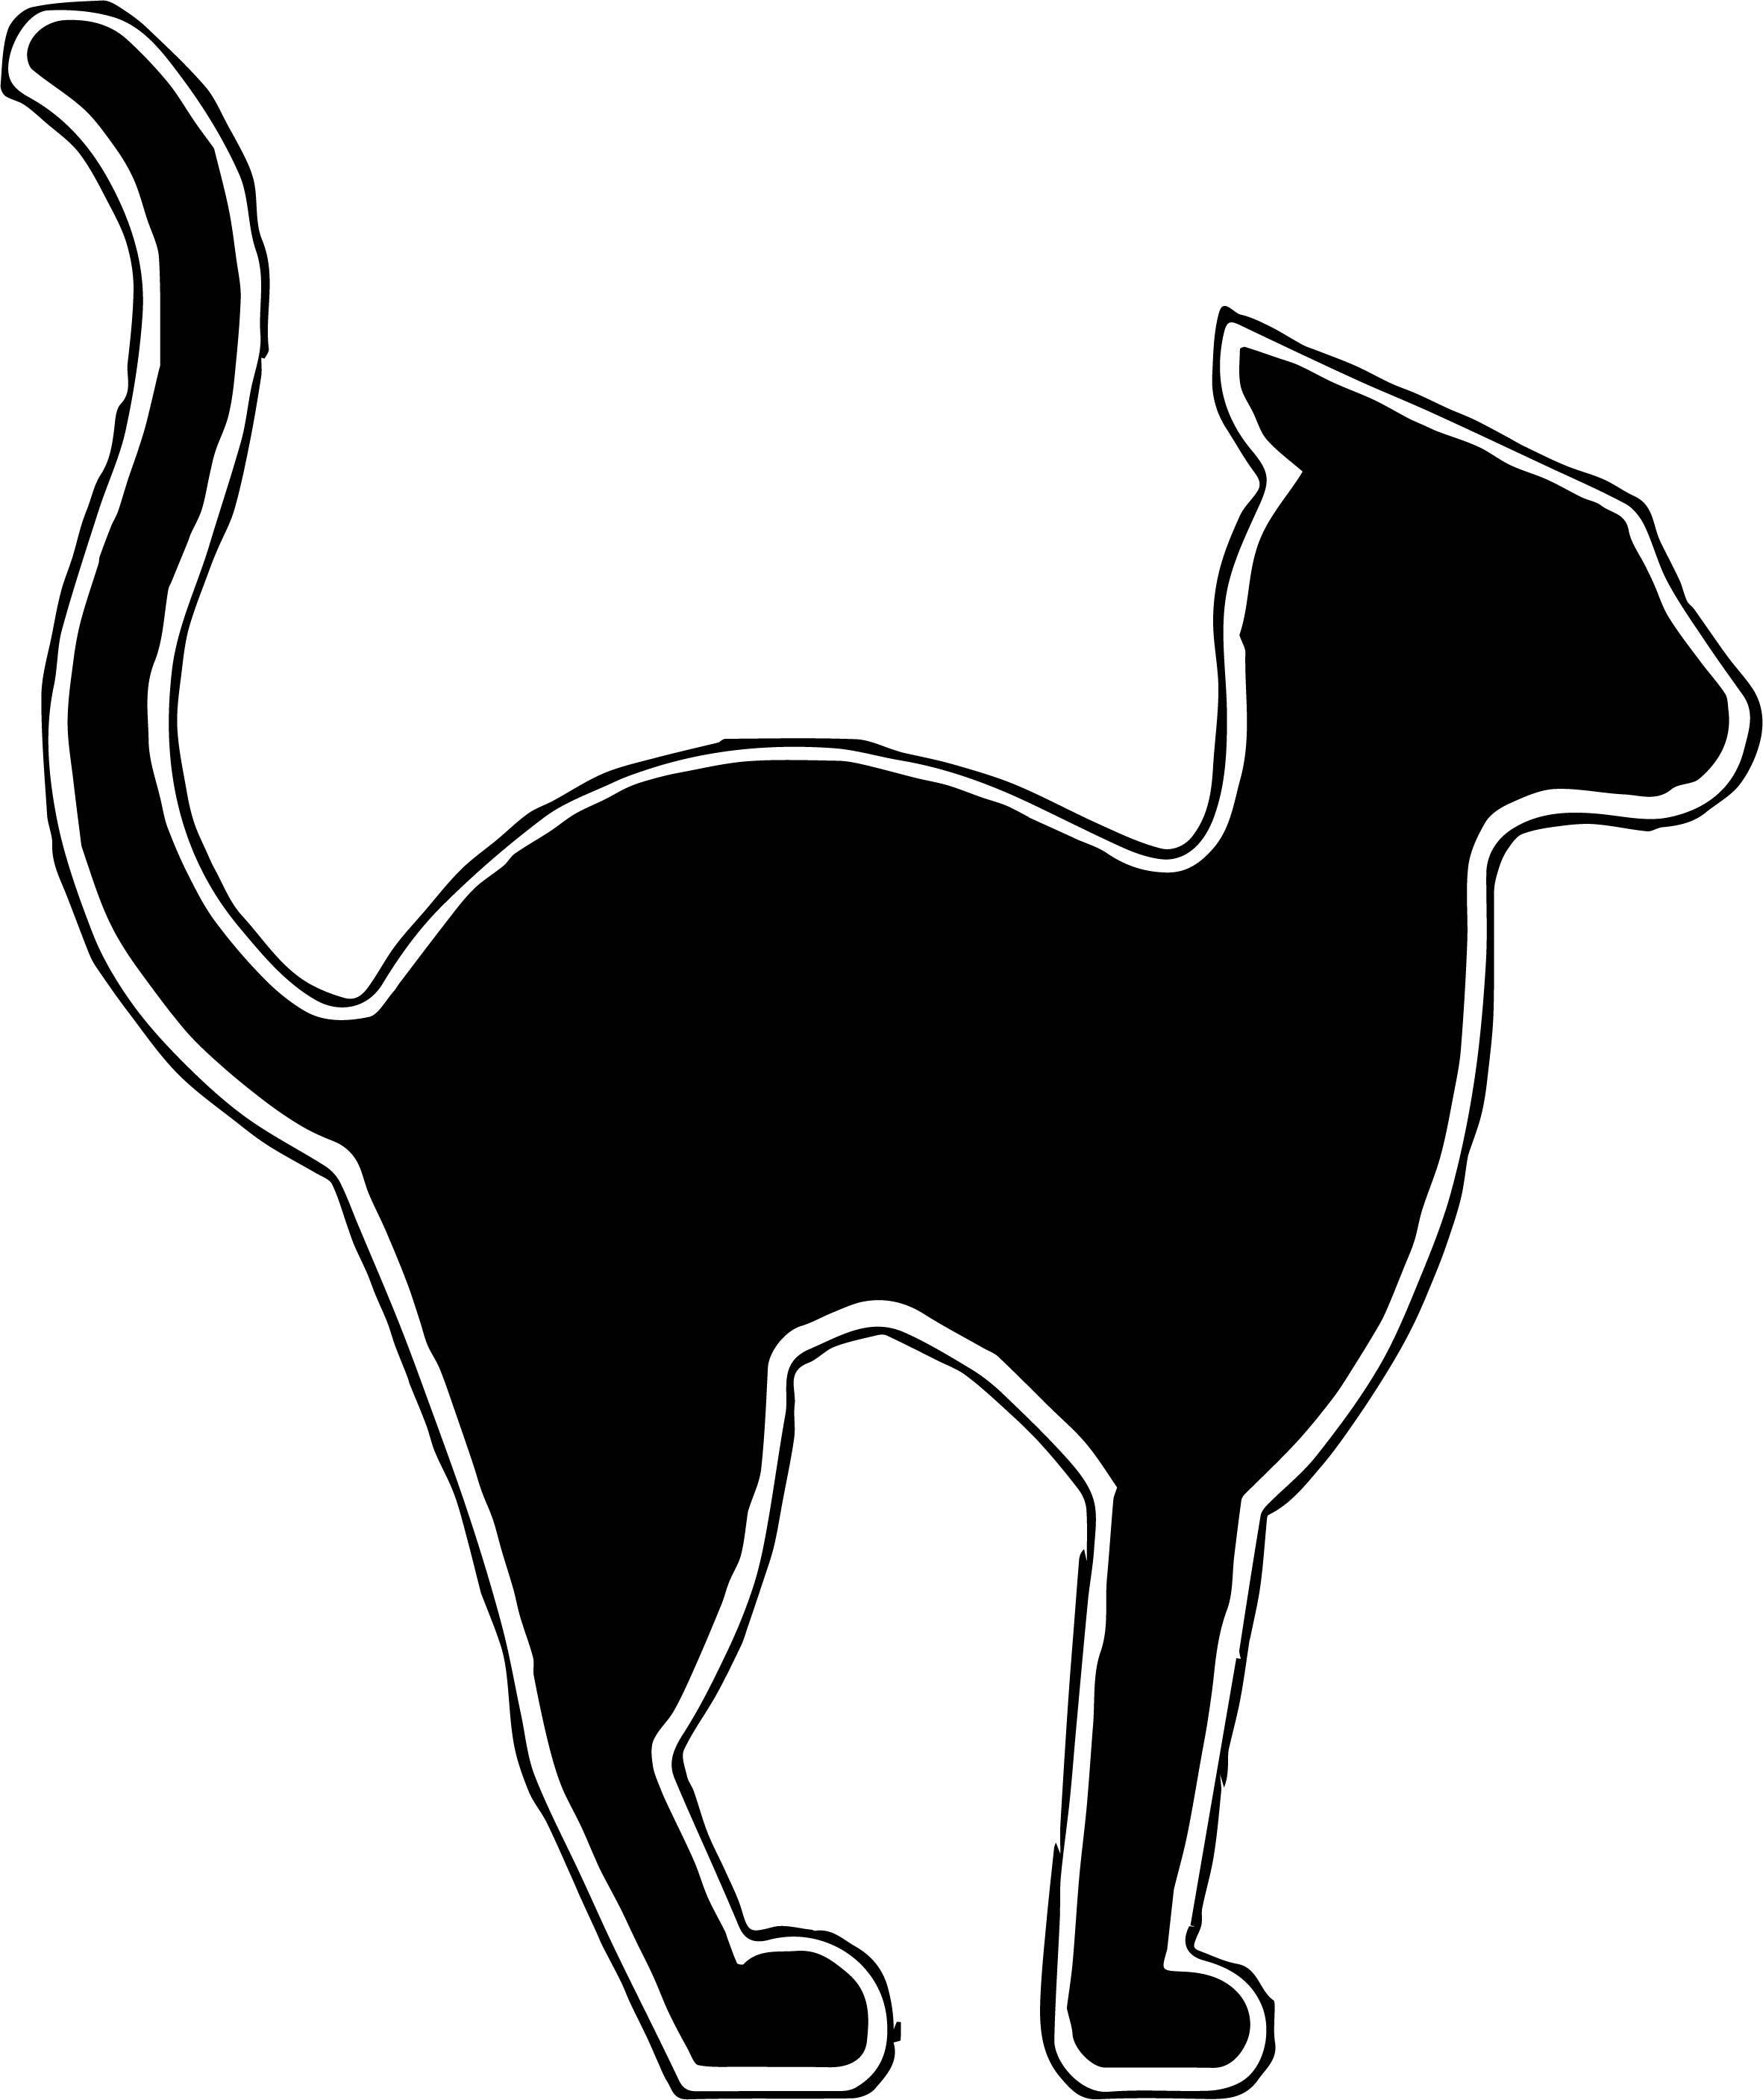 Waiting Black Cat Coloring Page Wecoloringpage Com